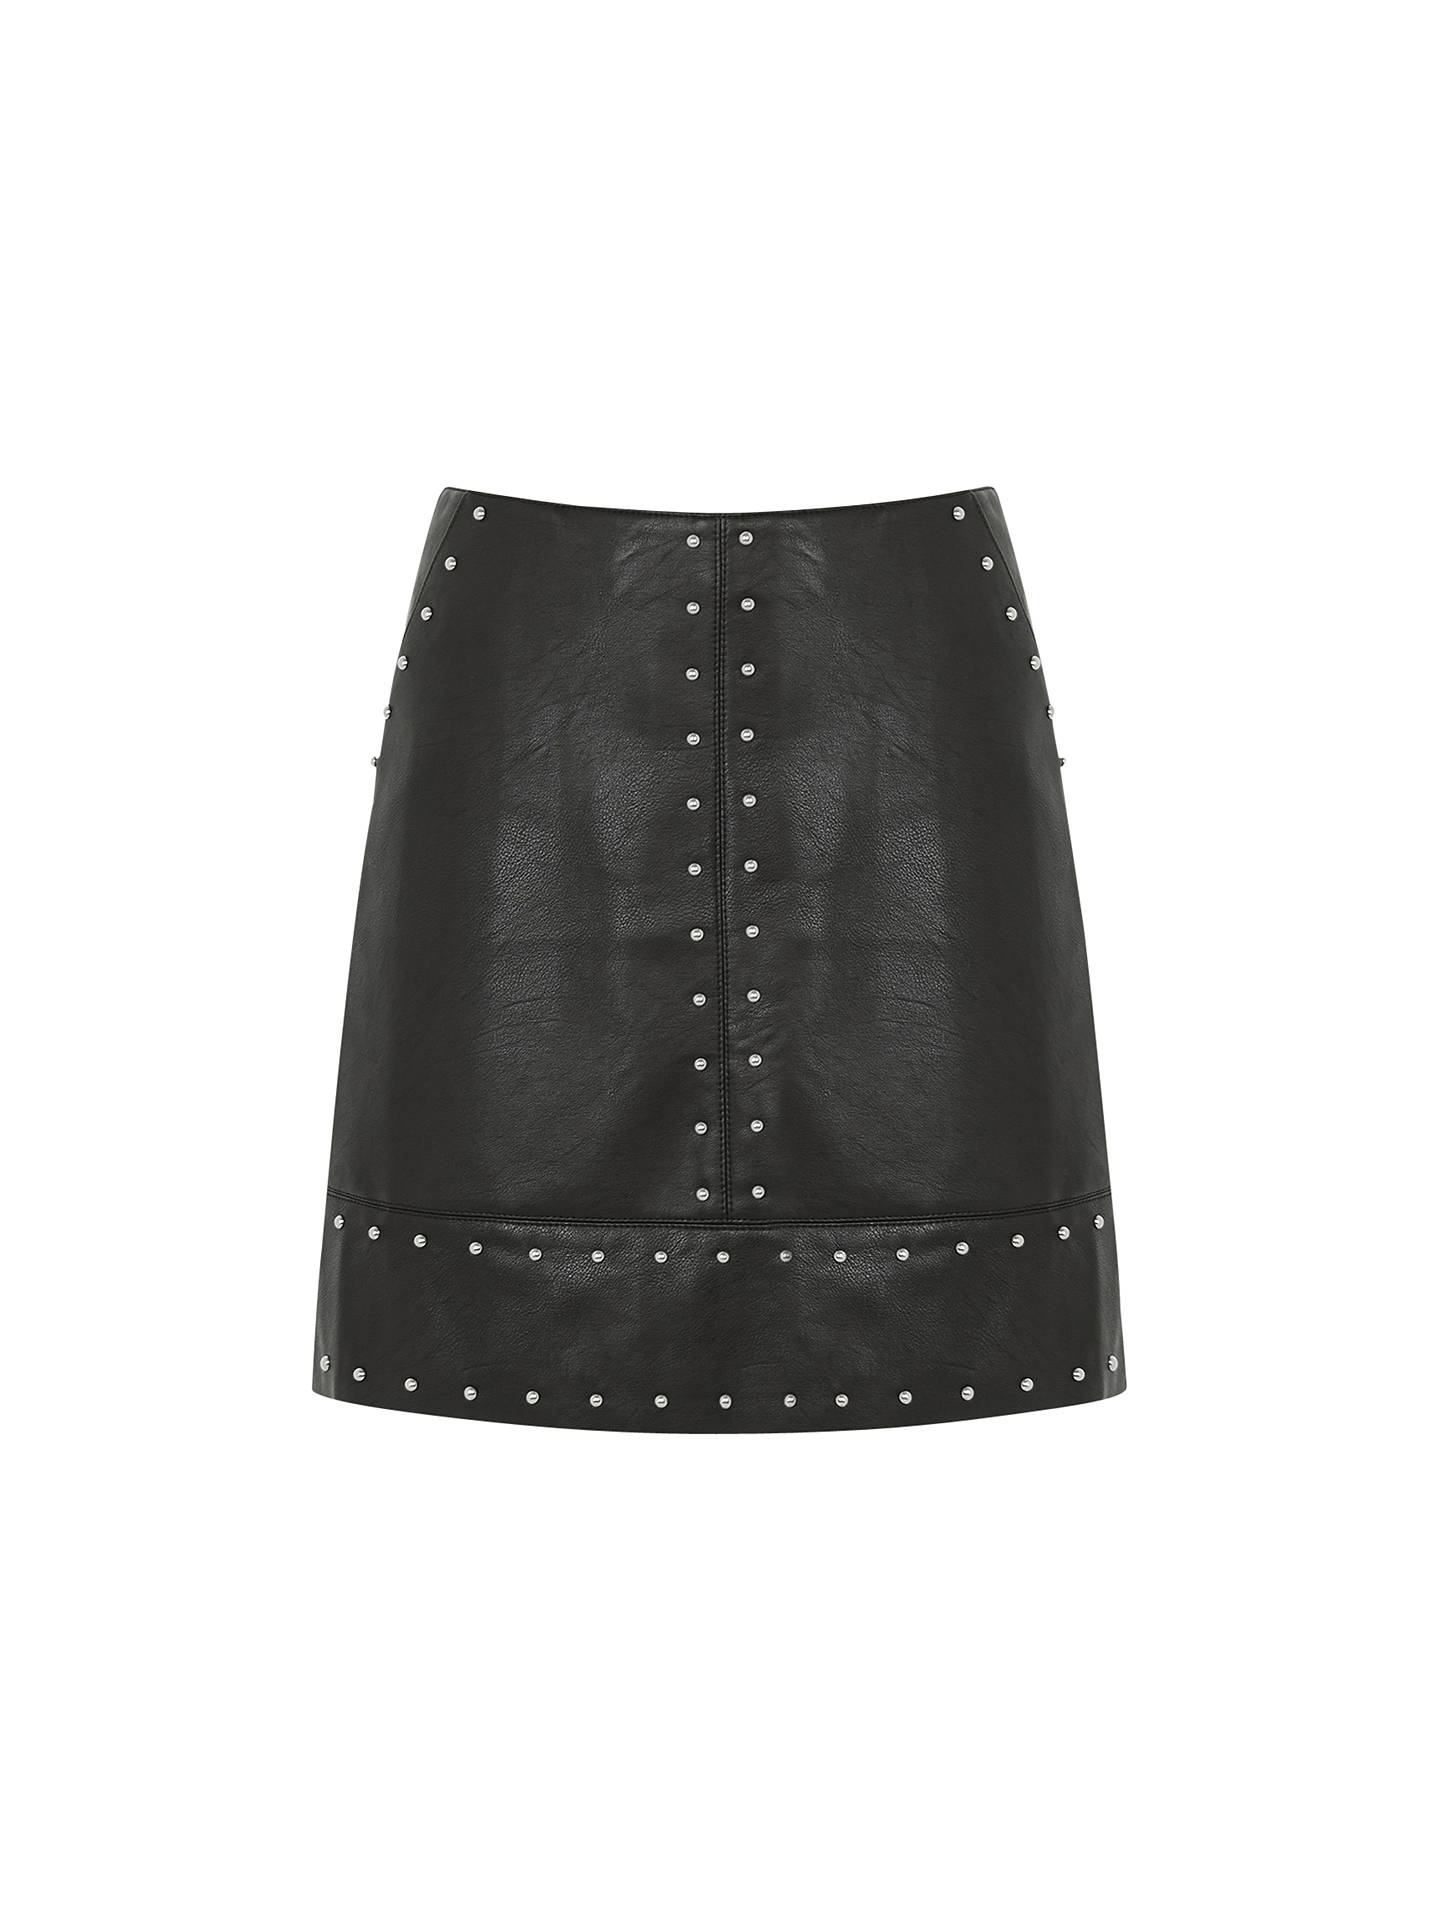 cb7a20665 Buy Warehouse Faux Leather Studded Skirt, Black, 6 Online at johnlewis.com  ...